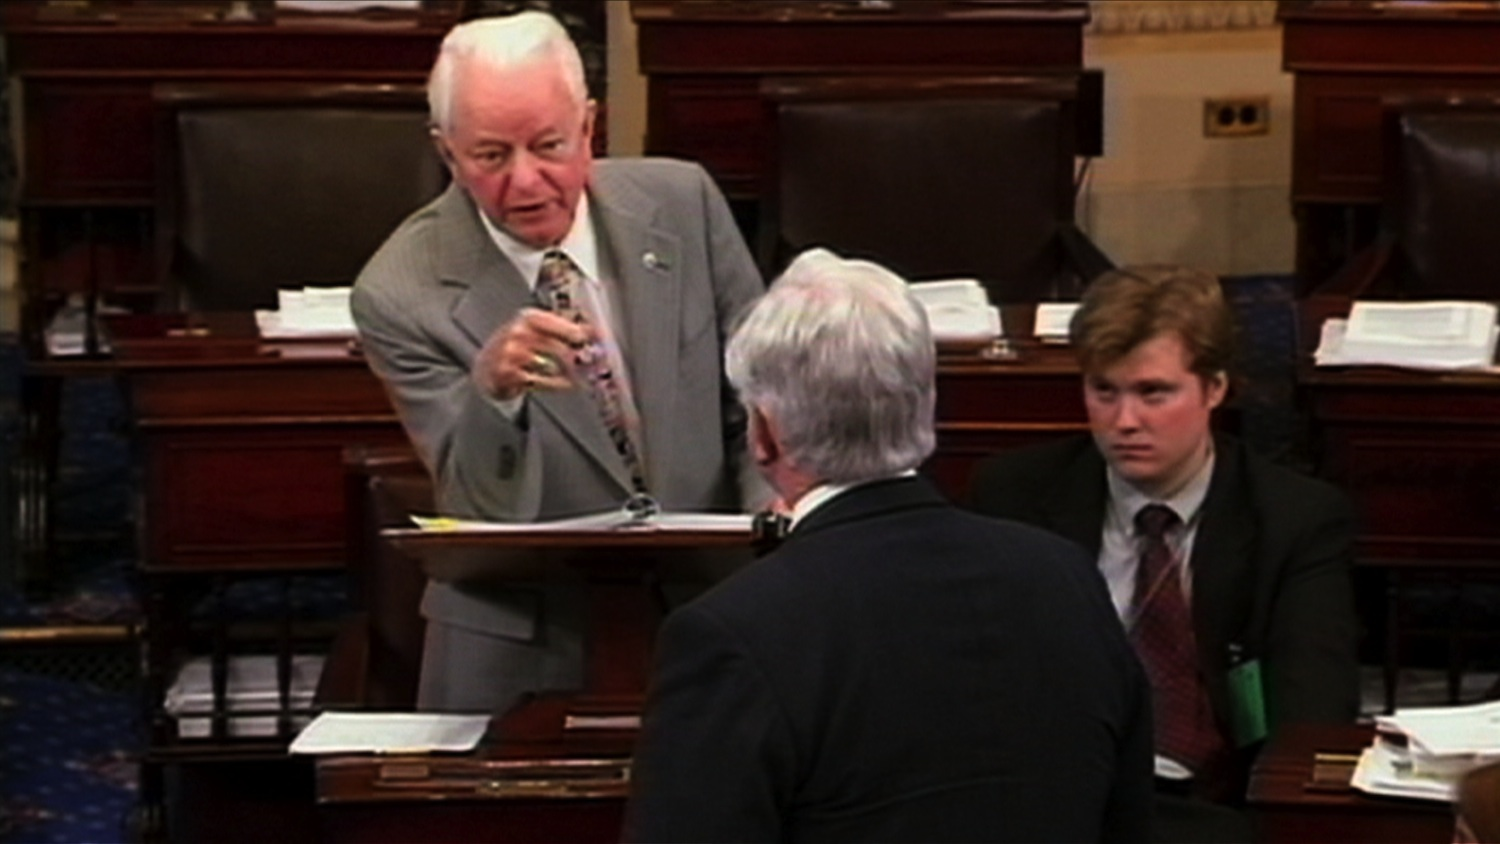 MAC DVD 10_Kennedy and Byrd in Senate Chamber 01_HD.jpg